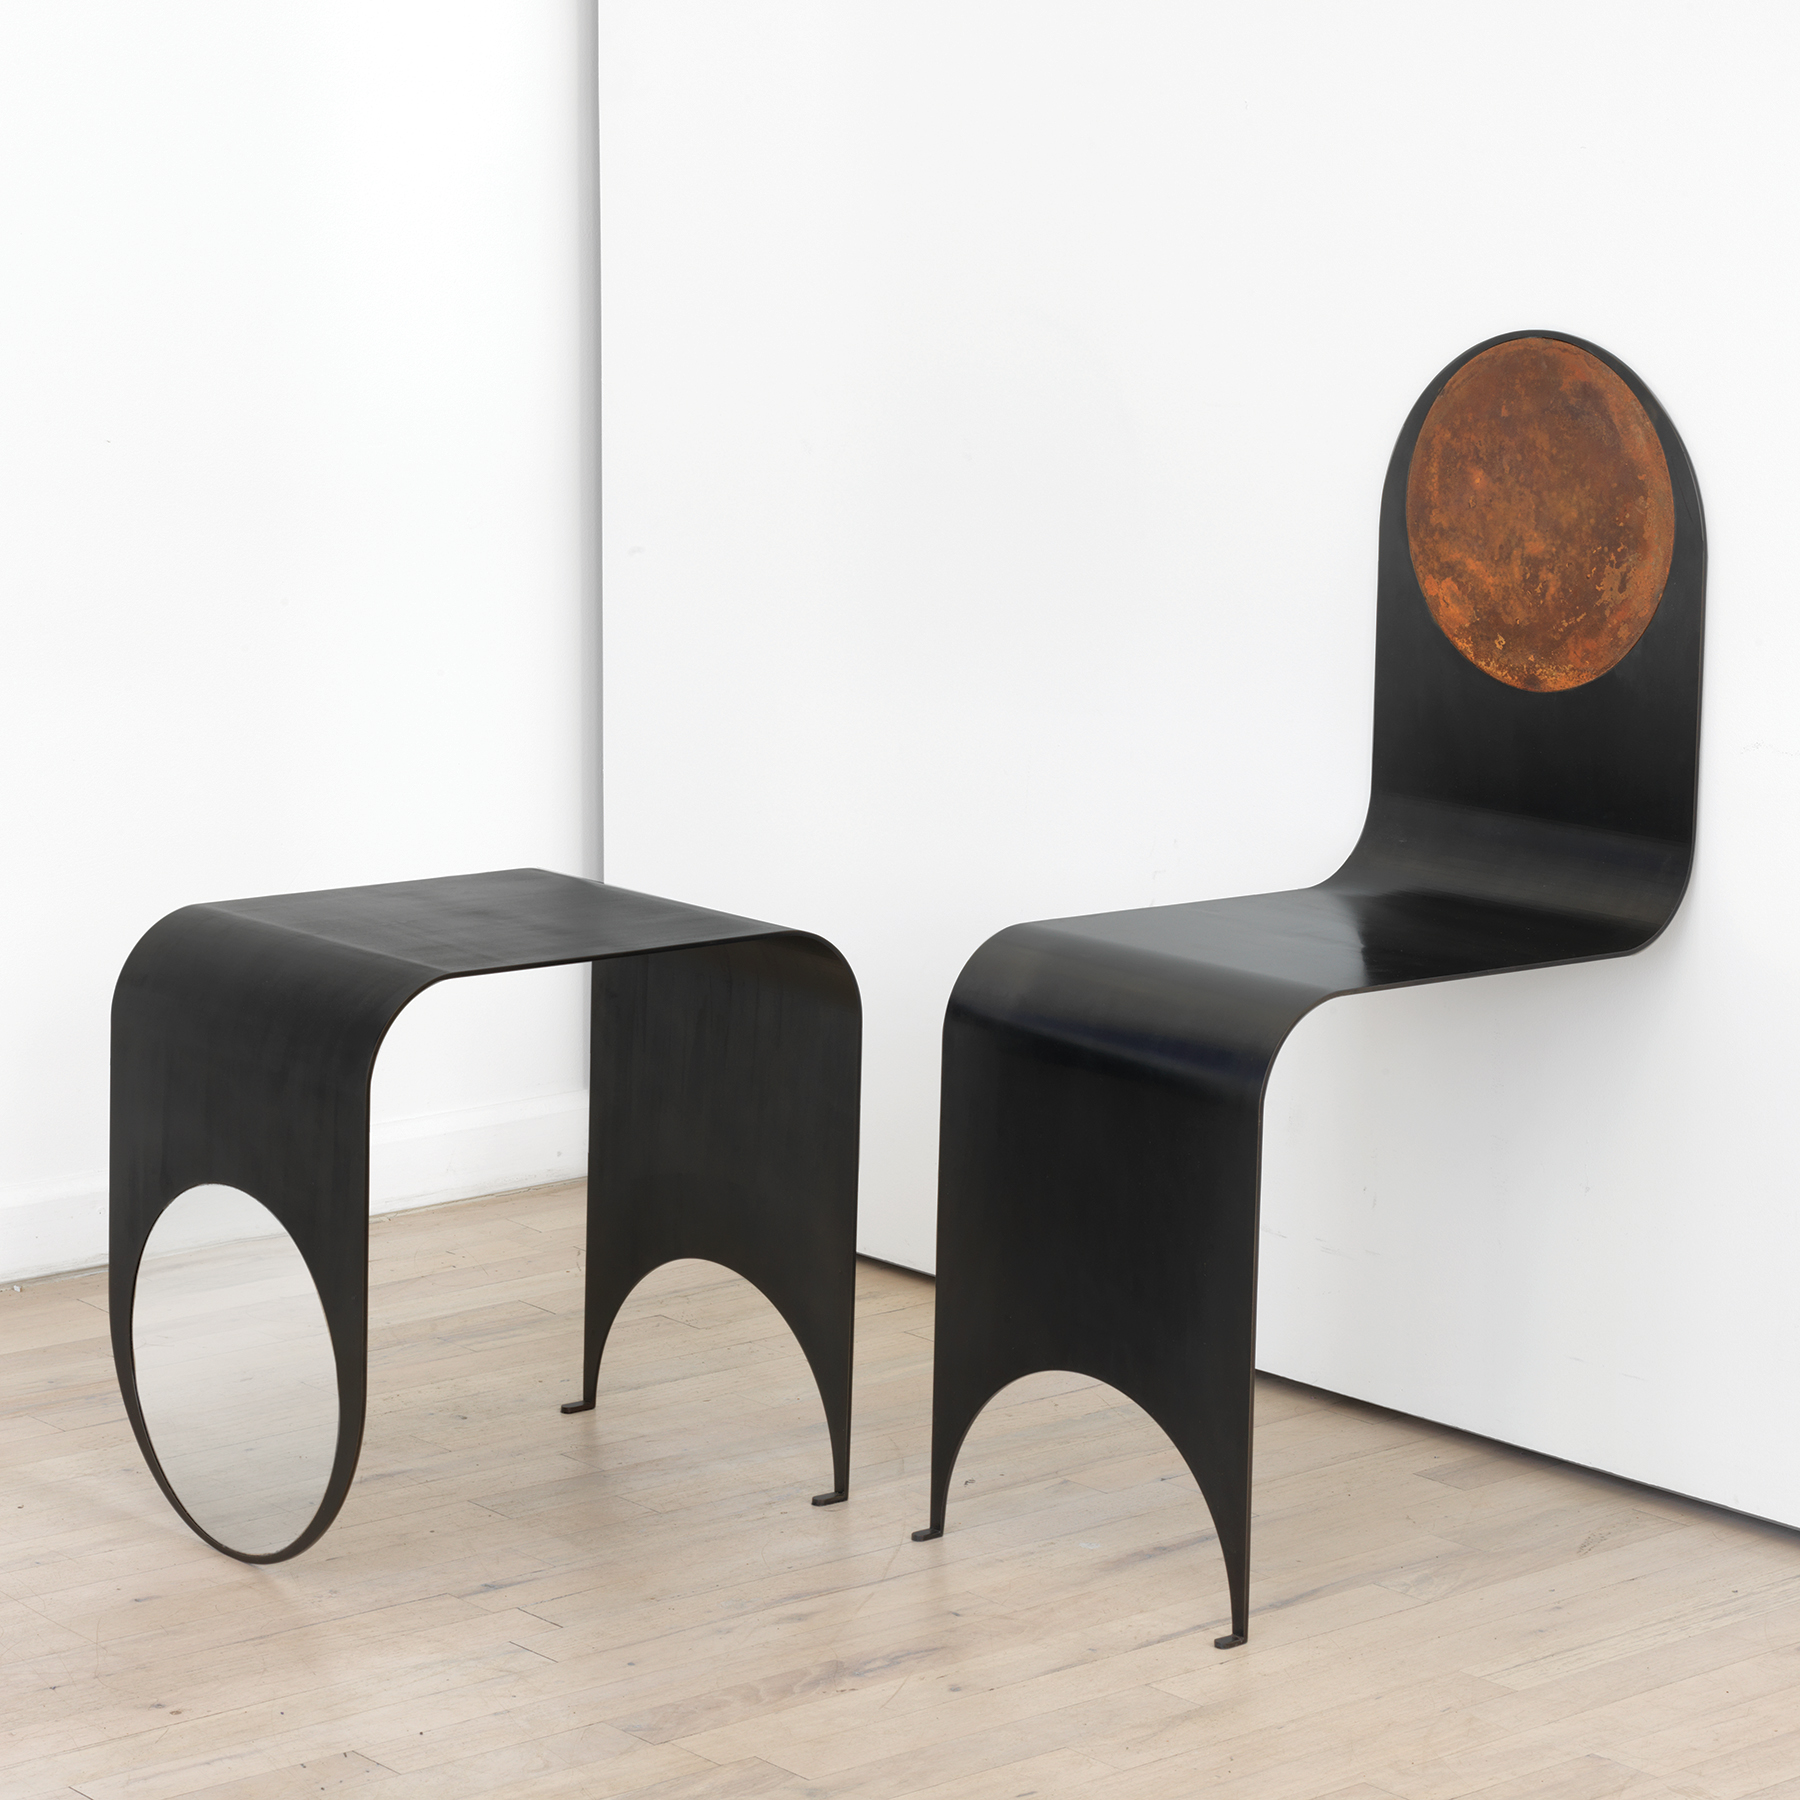 4053140584026308597 - Thin chair and table 1.jpg